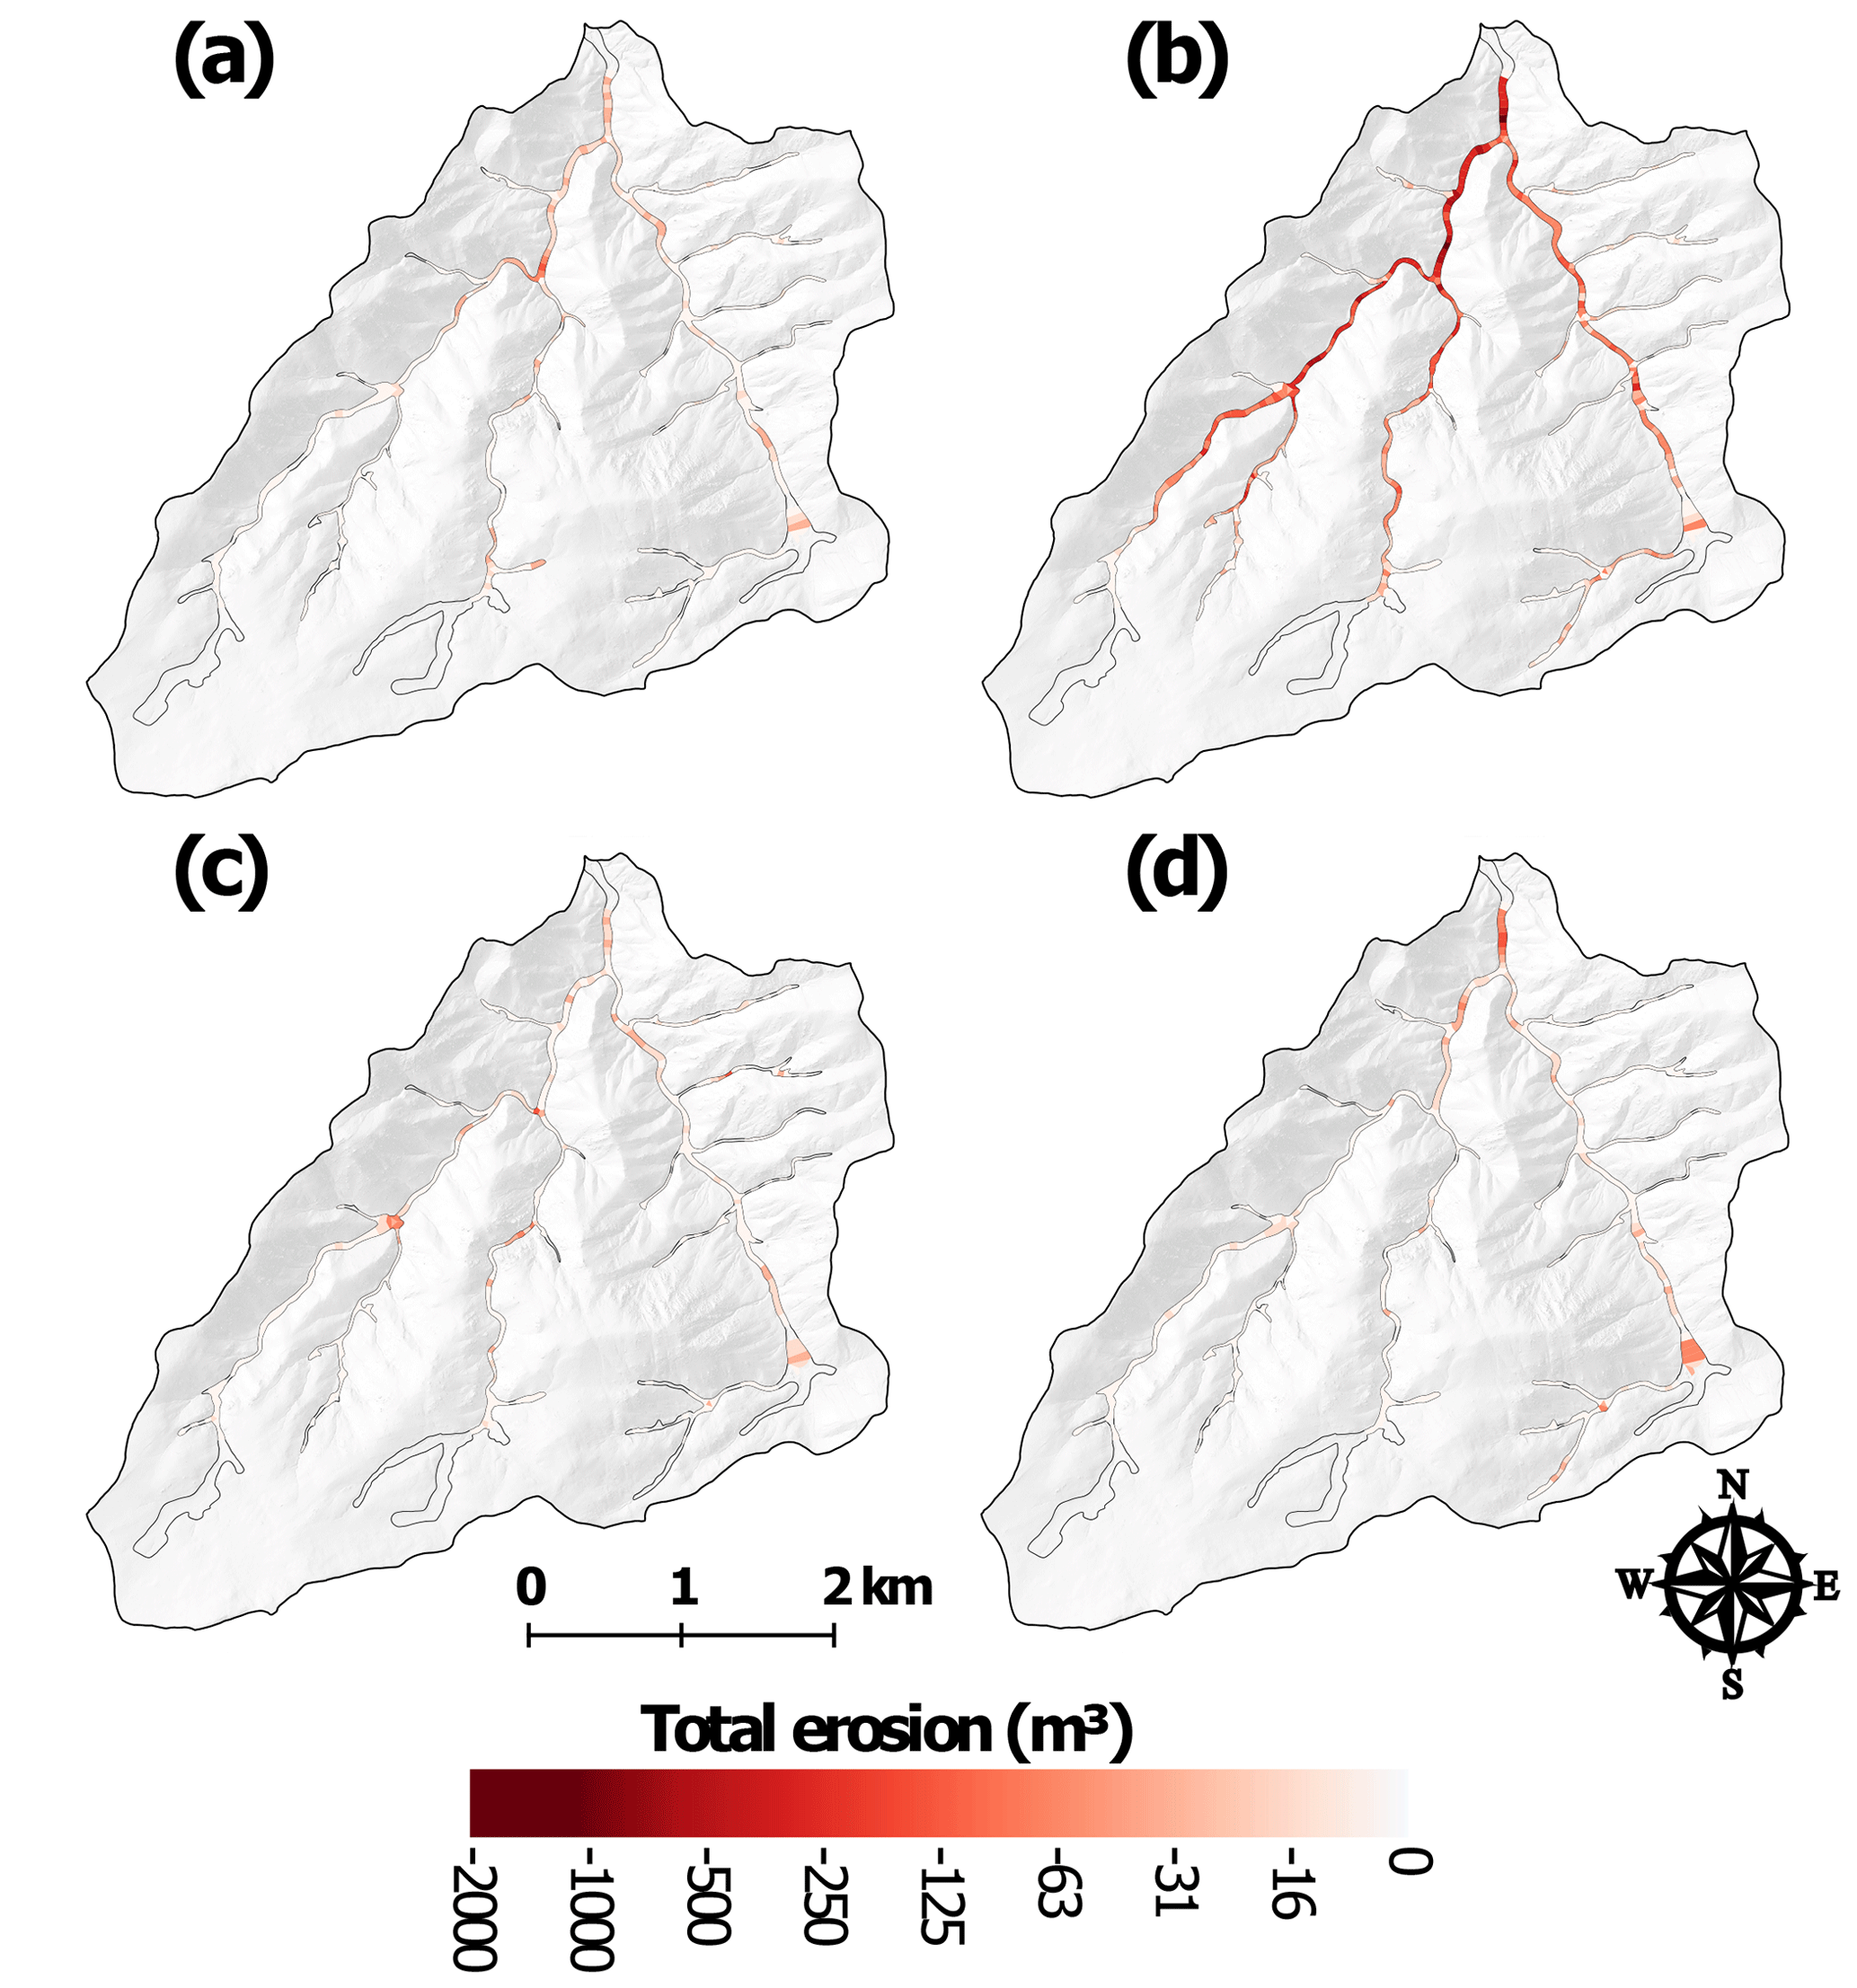 ESurf - Spatial and temporal patterns of sediment storage